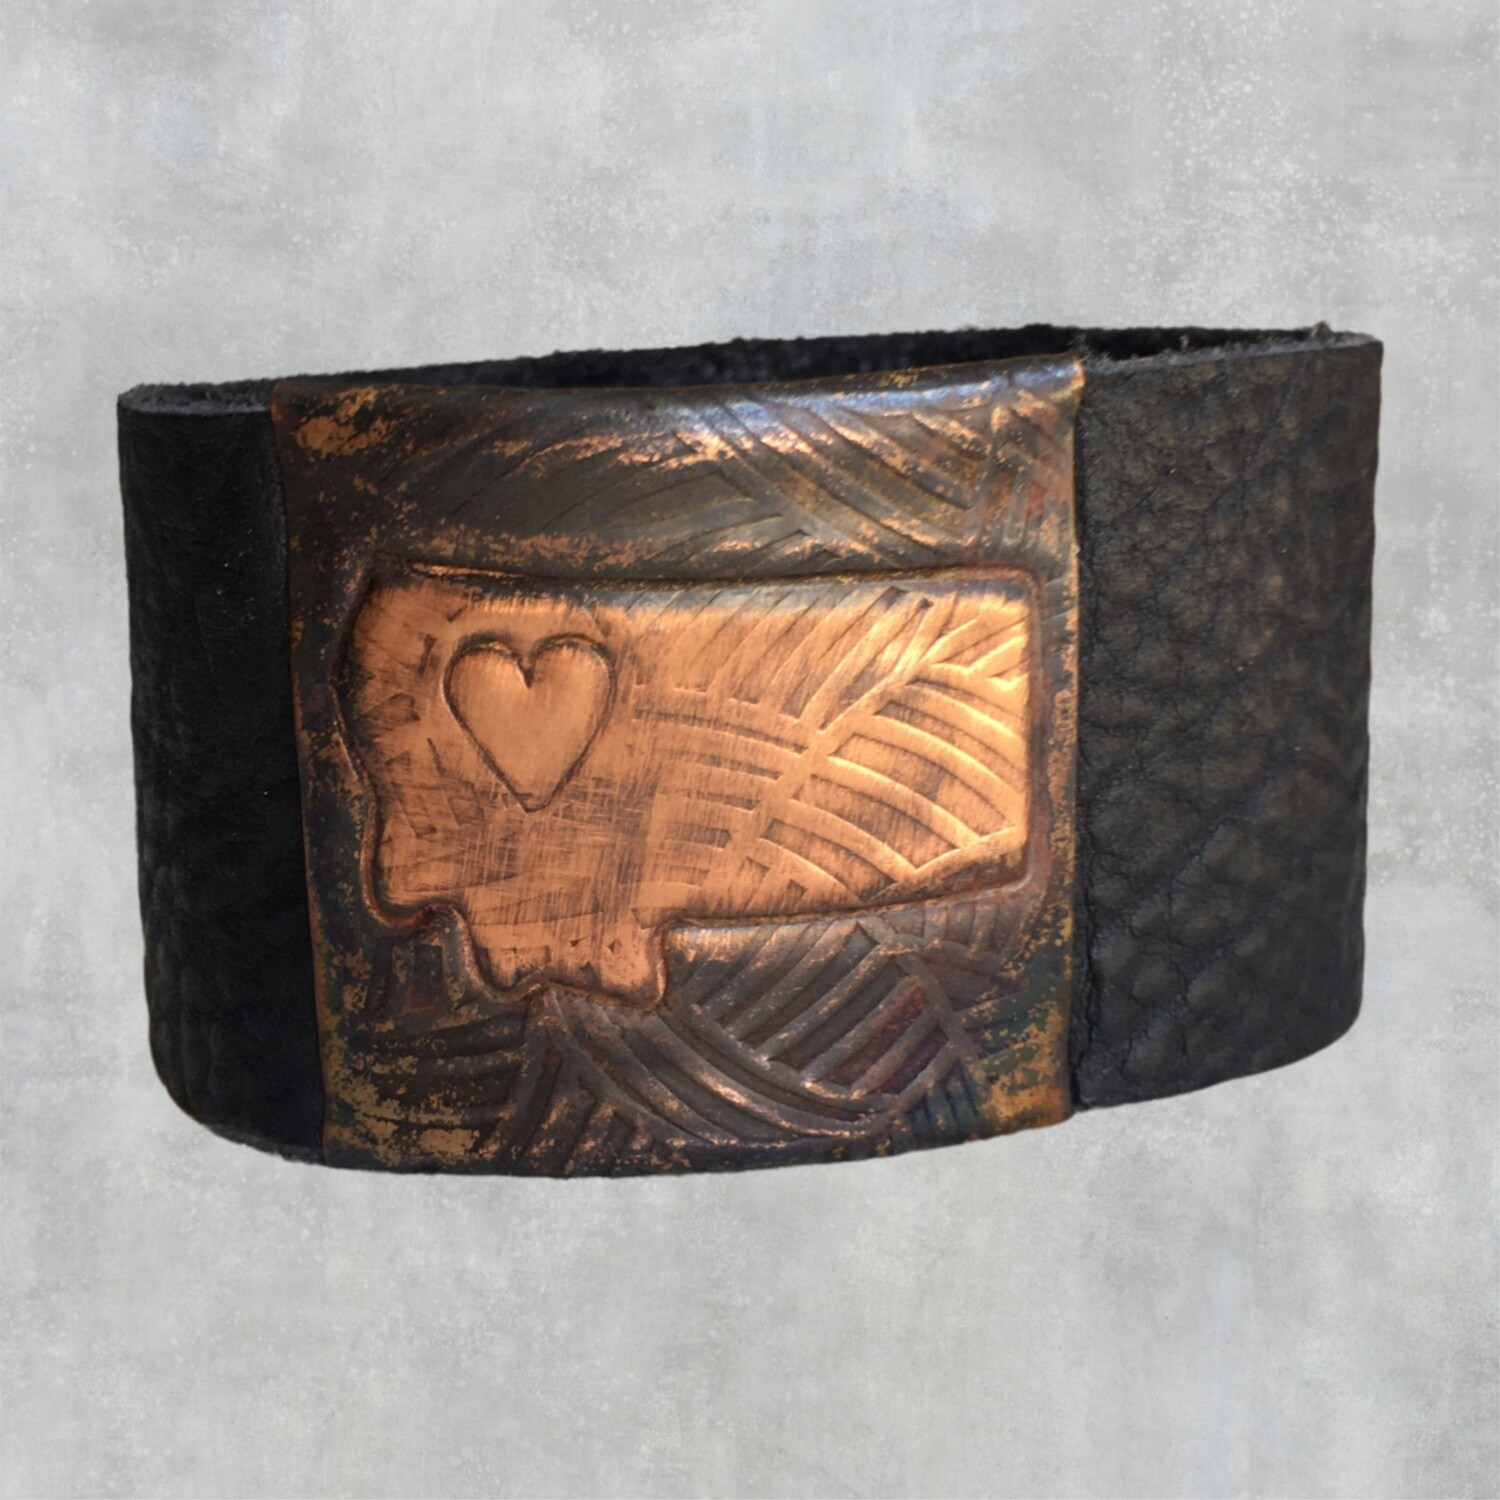 26-12 MT State Leather Cuff $30